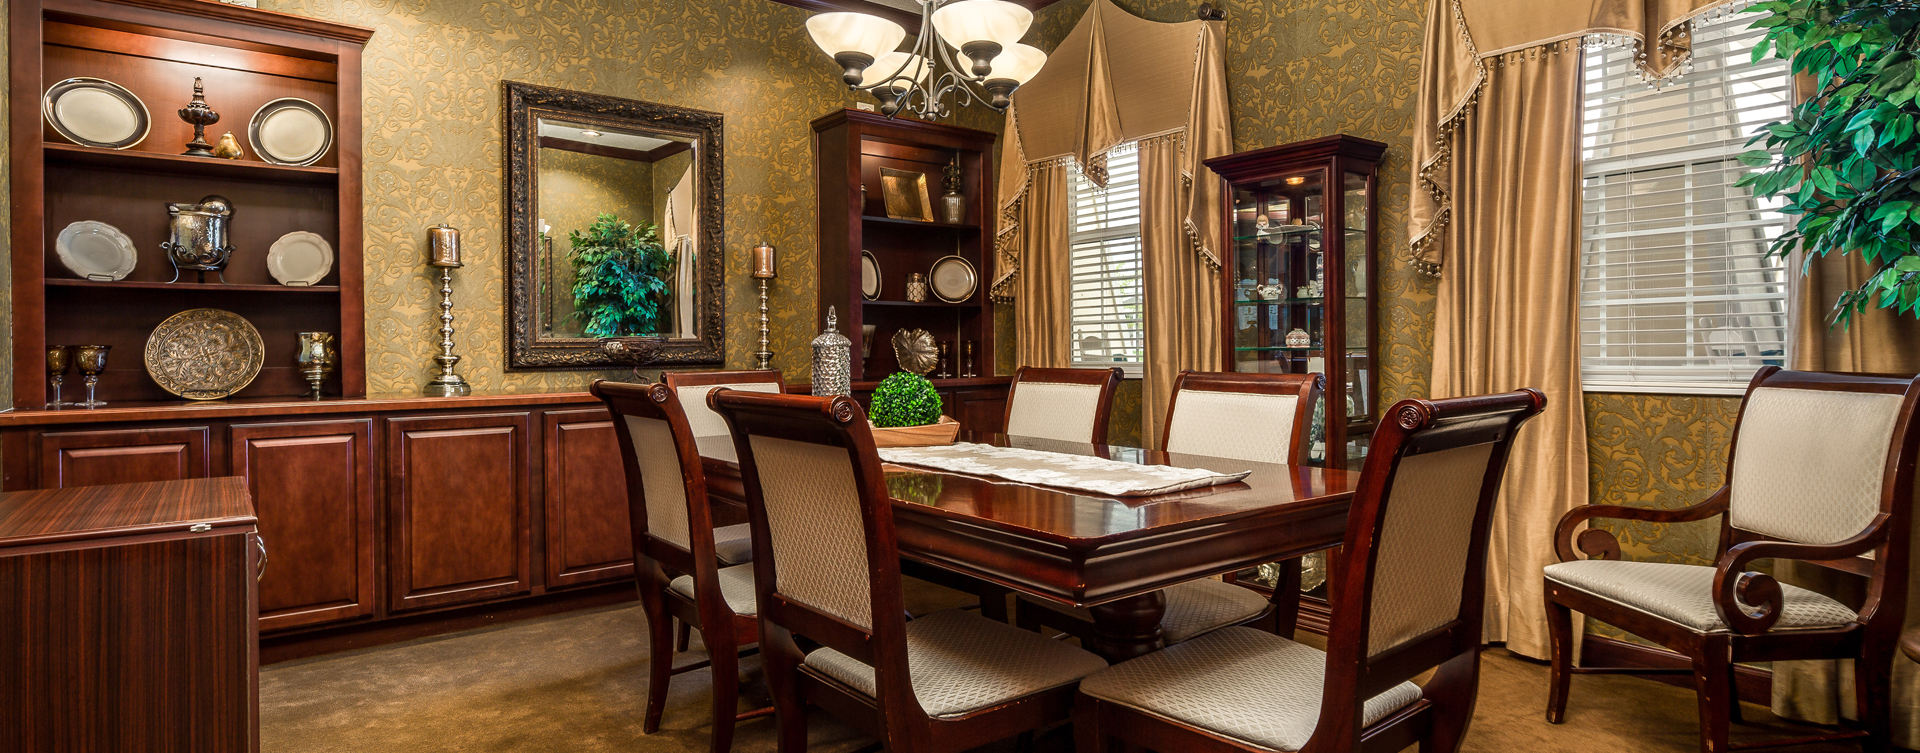 Have fun with themed and holiday meals in the private dining room at Bickford of Okemos